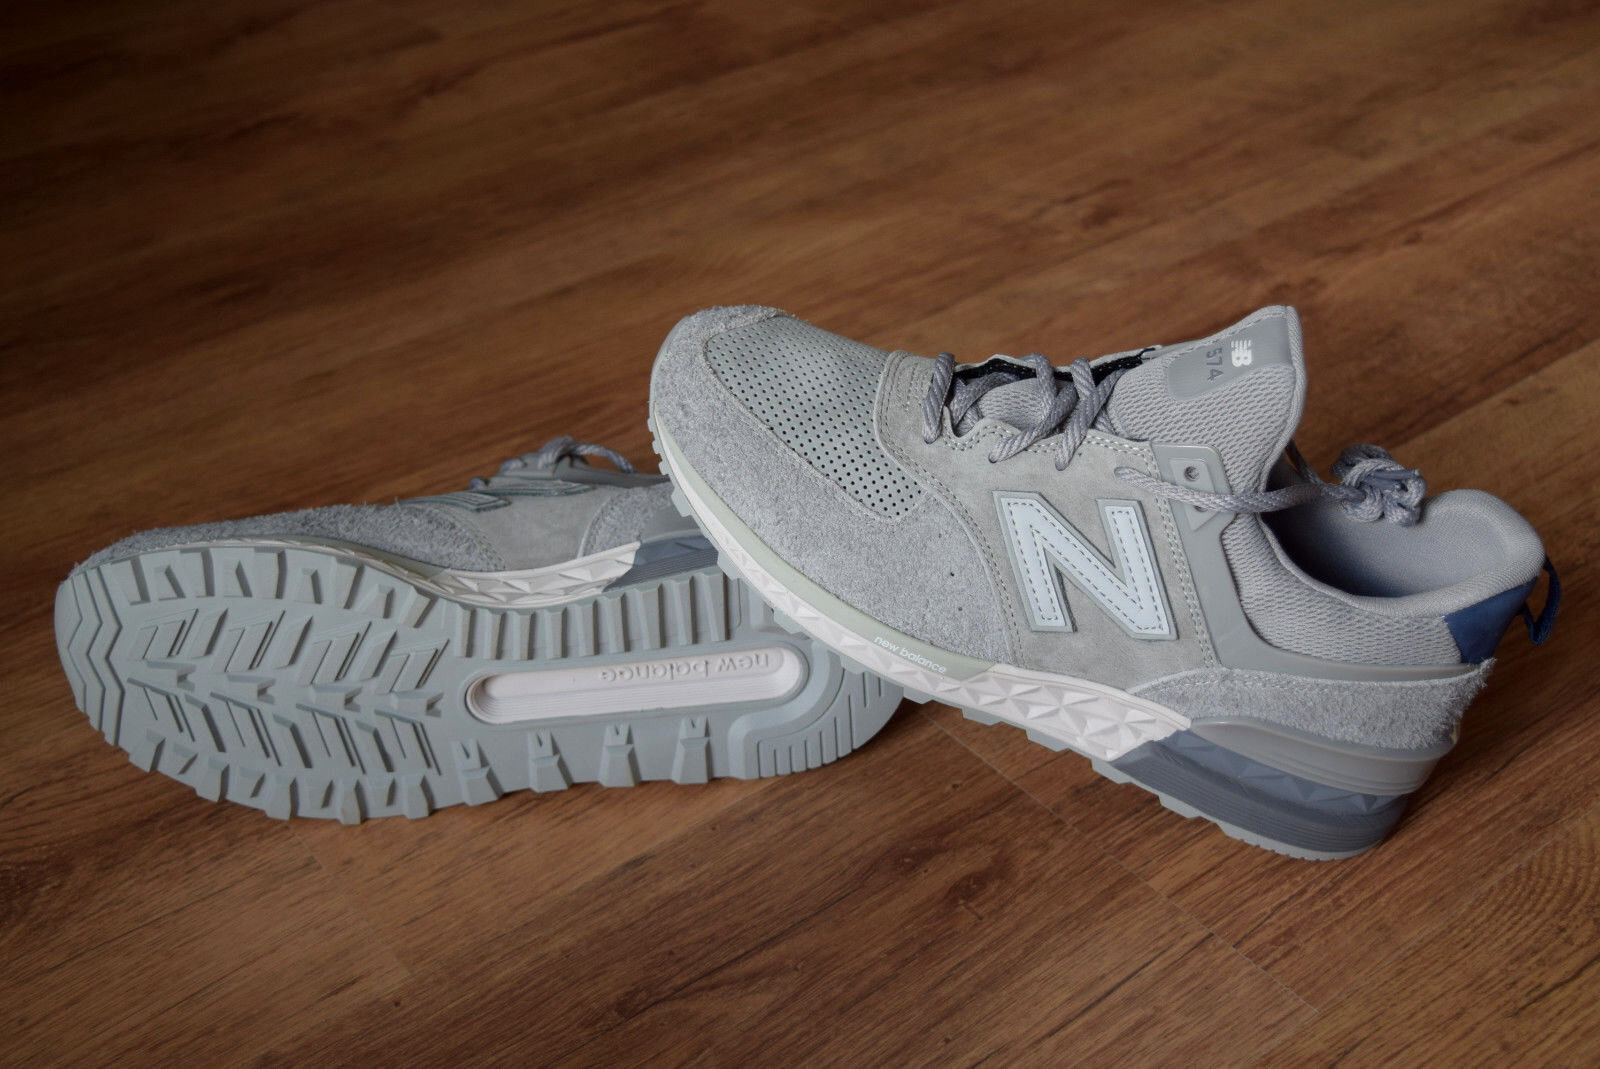 New Balance MS 574 OF 40 40,5 41,5 41,5 41,5 42 42,5 43 44 44,5 45 45,5 peak to streets   f81916